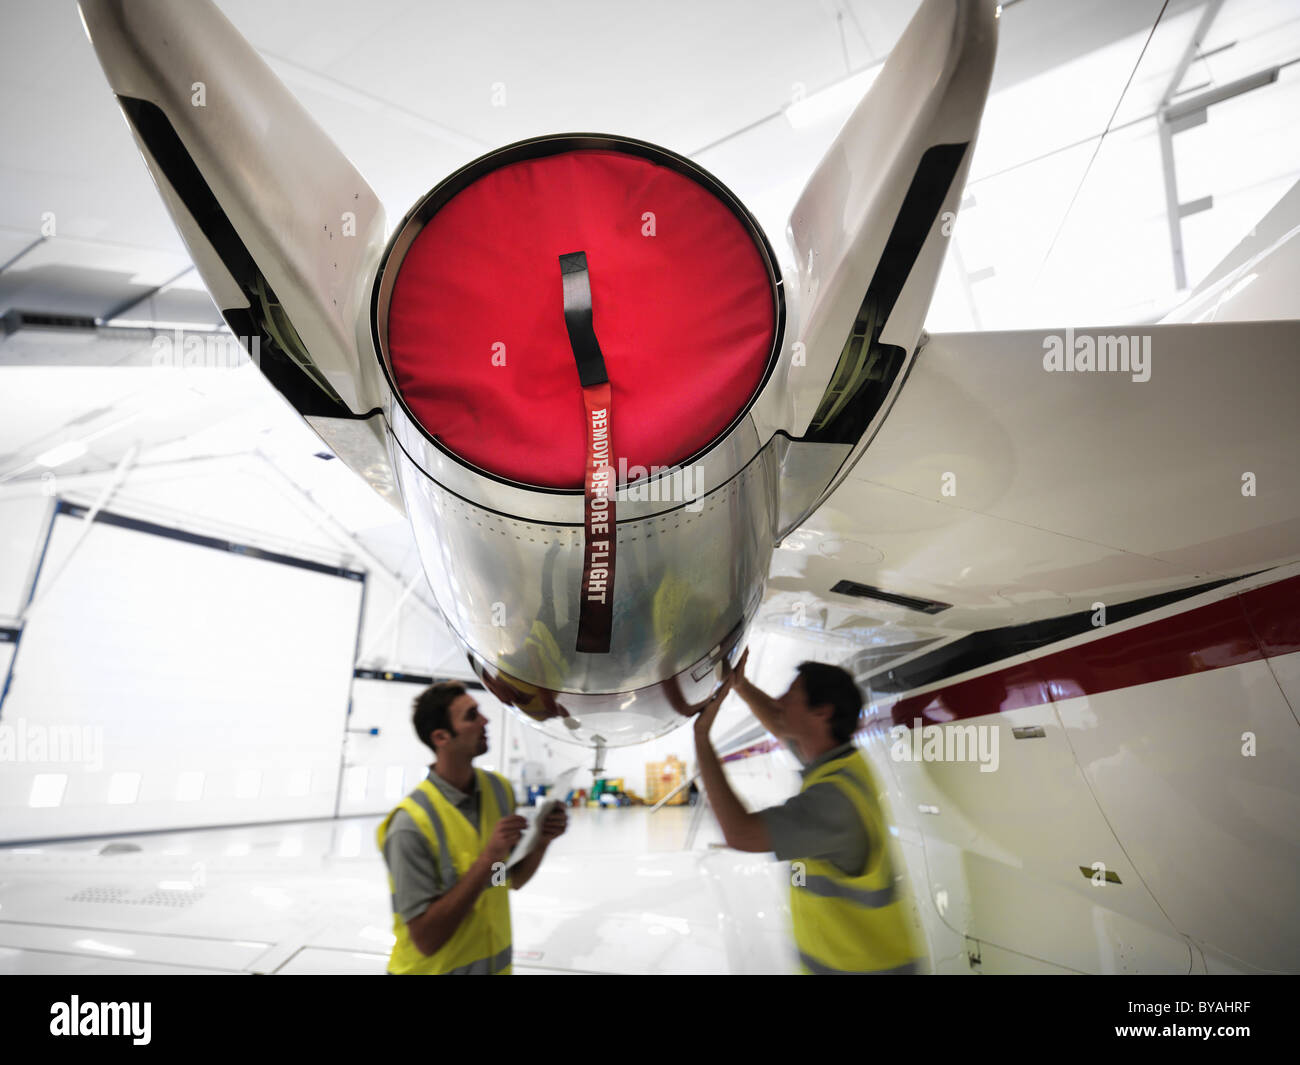 Engineers working on jet aircraft - Stock Image